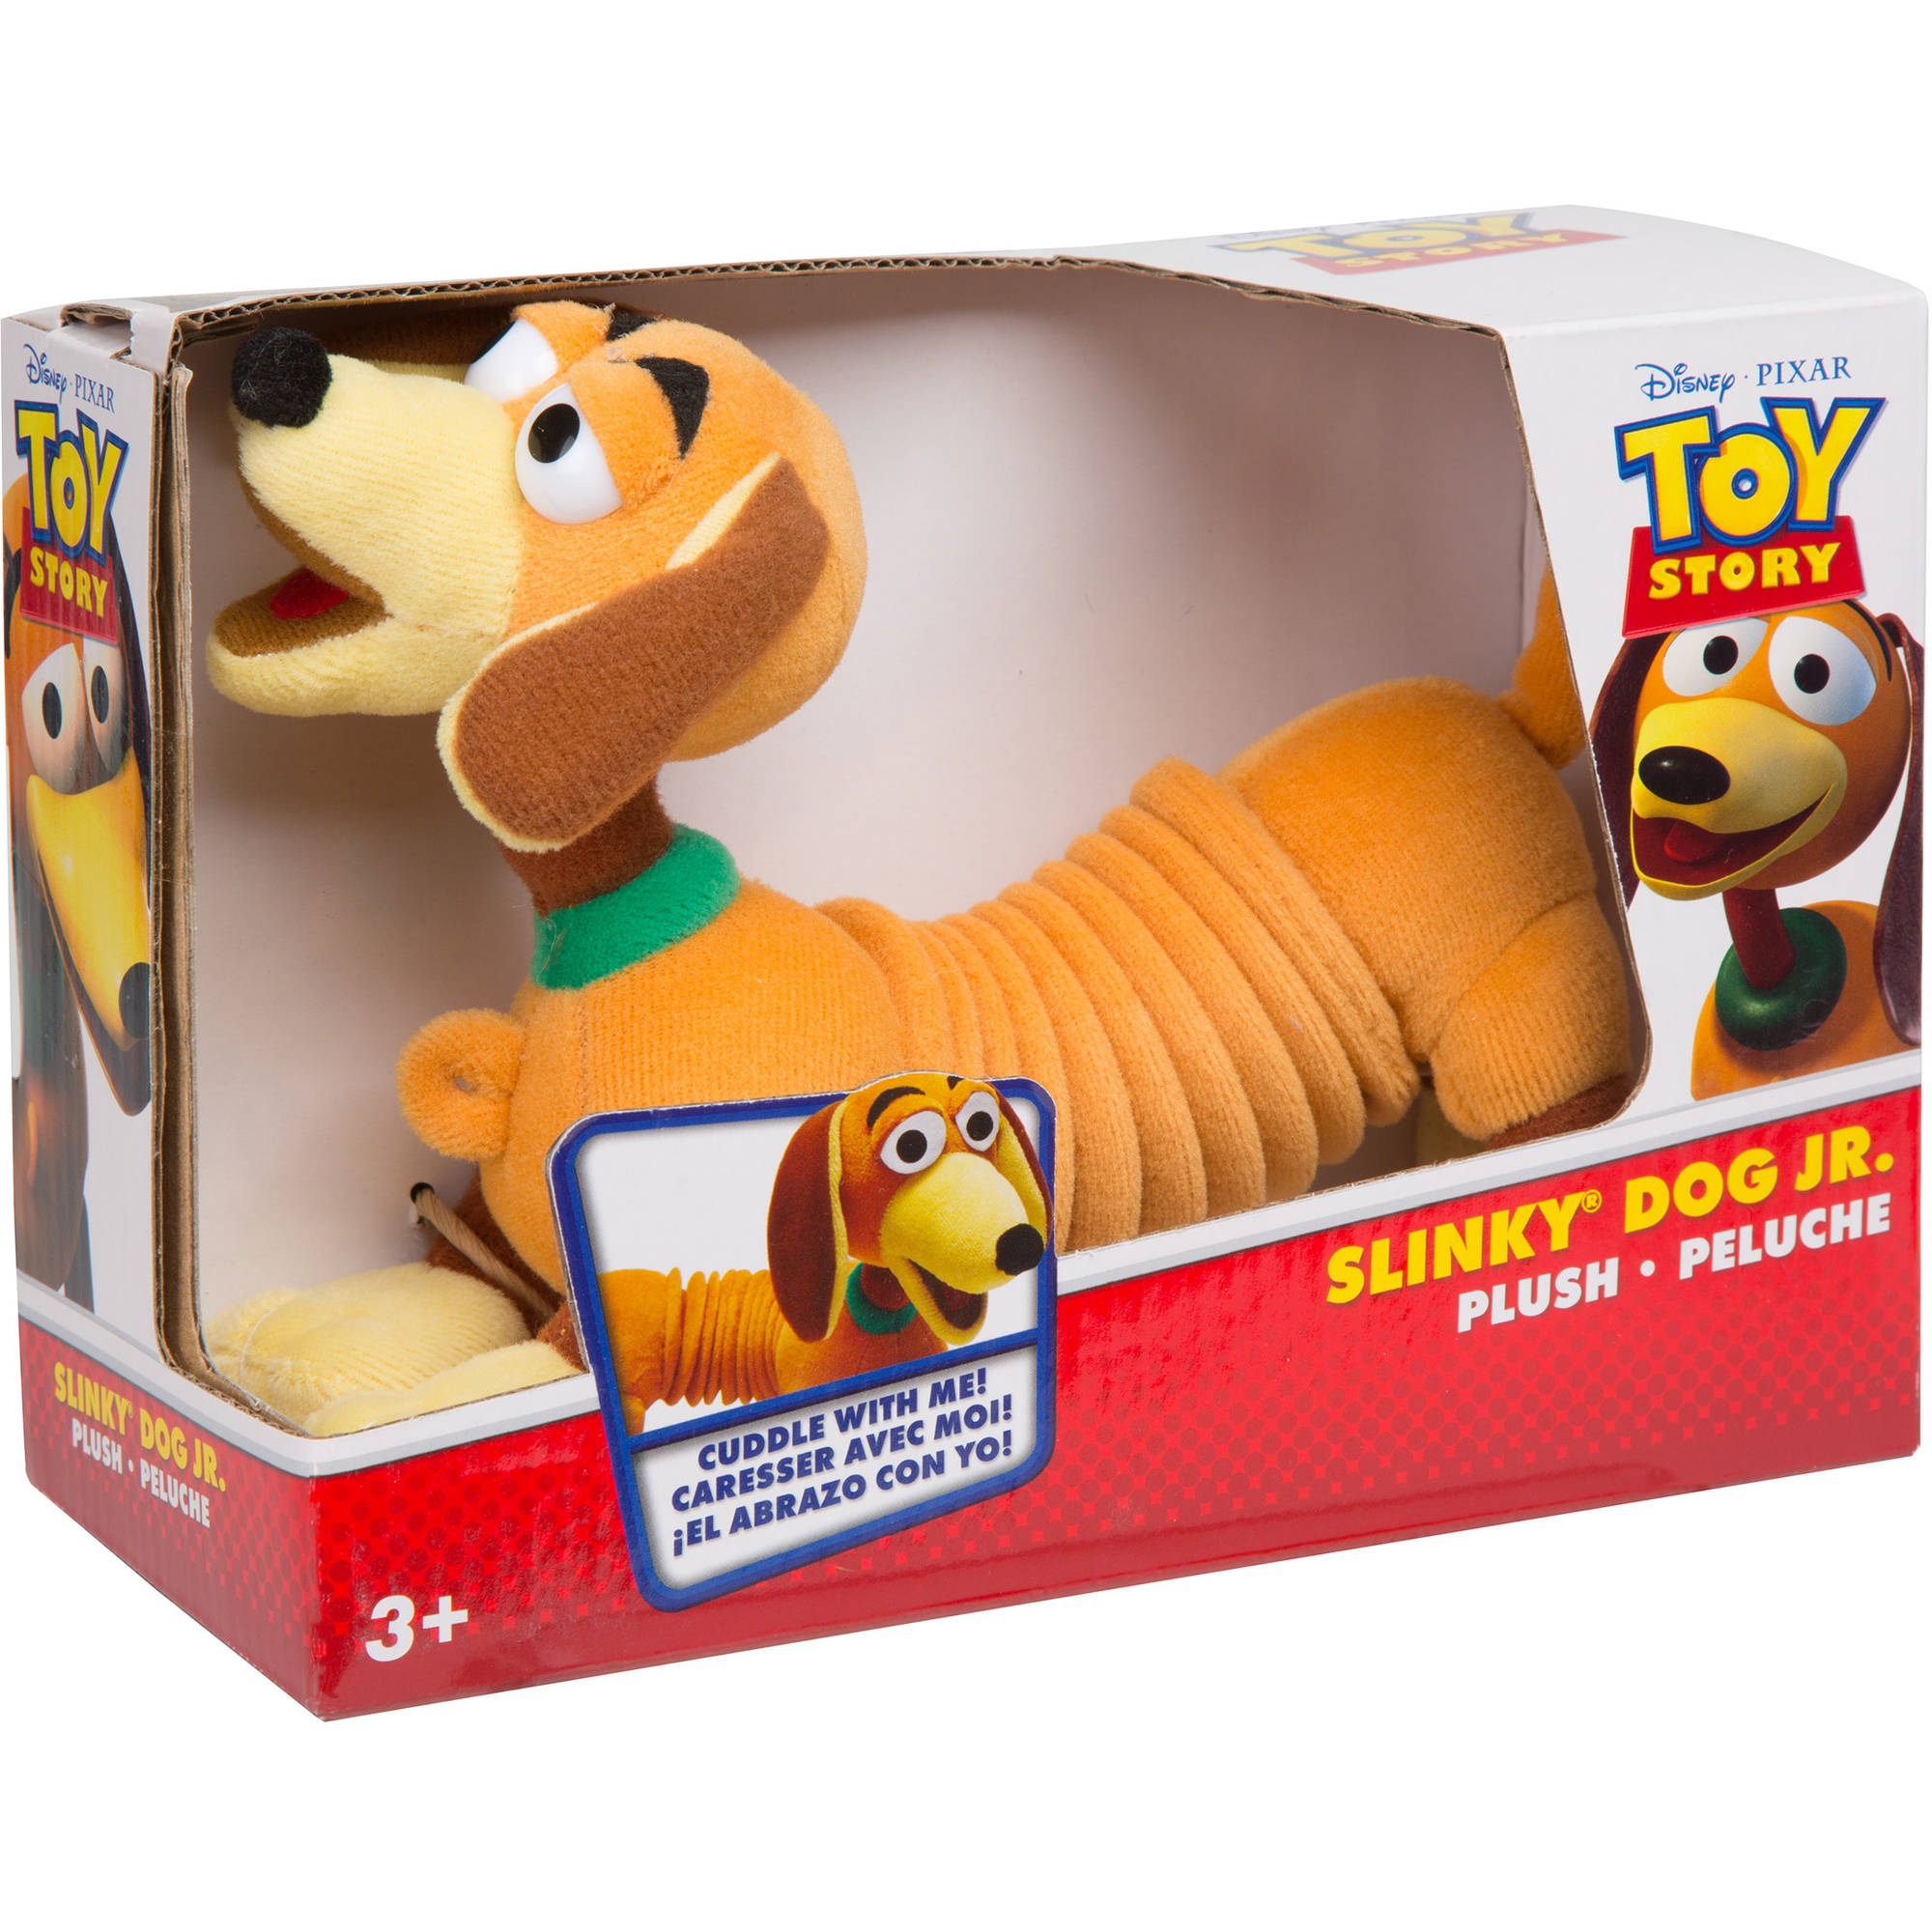 Slinky Dog Jr. Plush